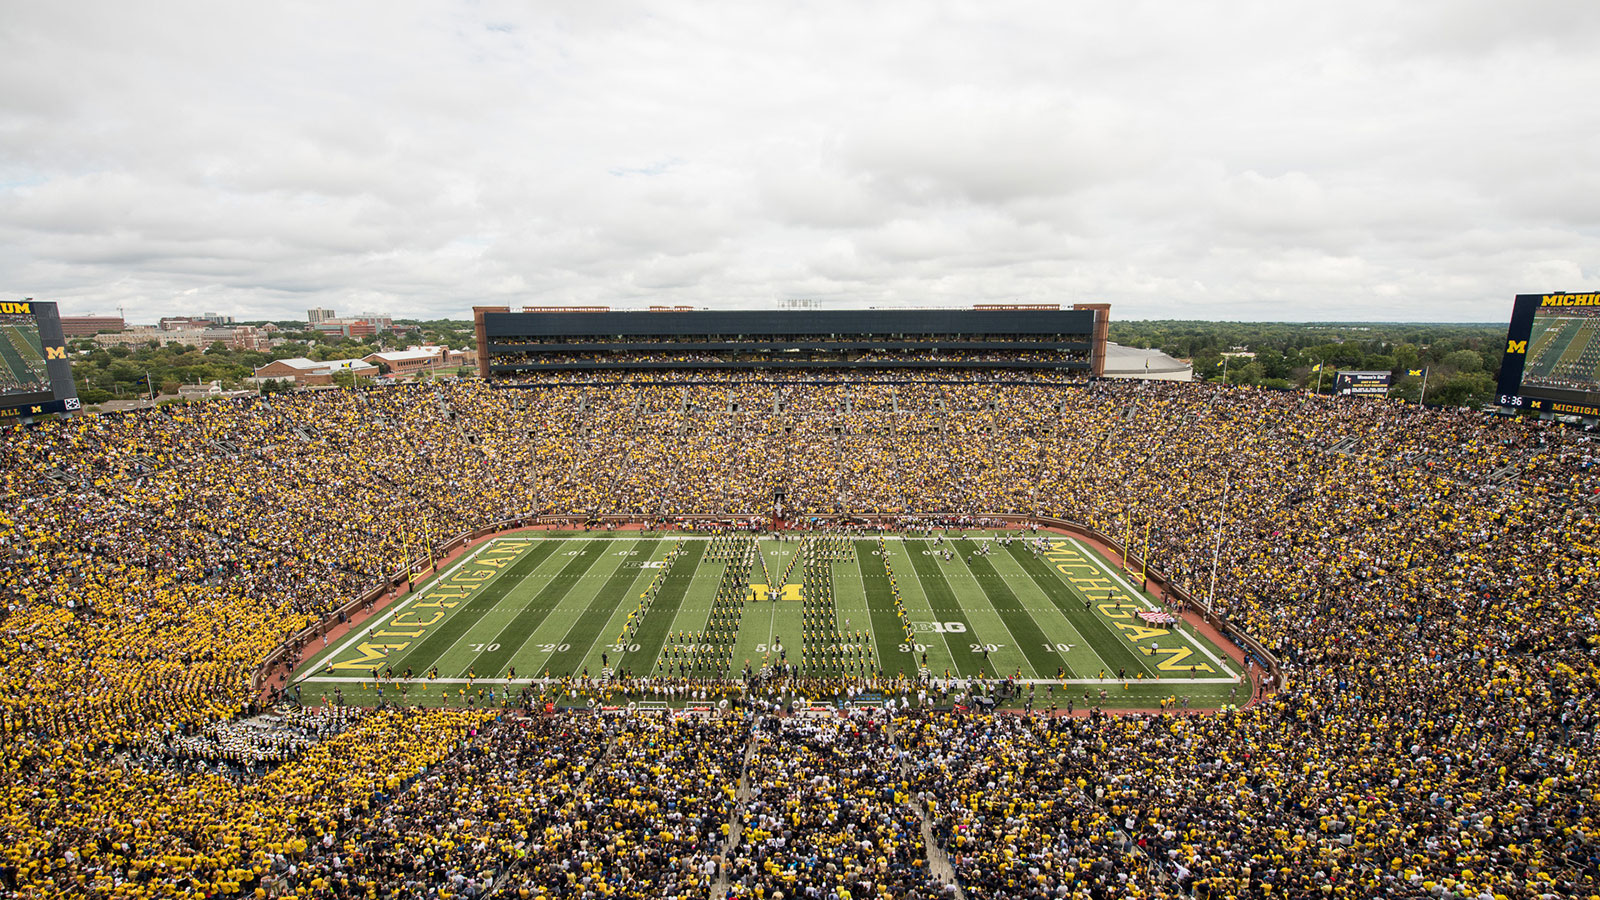 Umich Calendar Fall 2020 Michigan Announces Changes to 2020 and 2021 Football Schedules